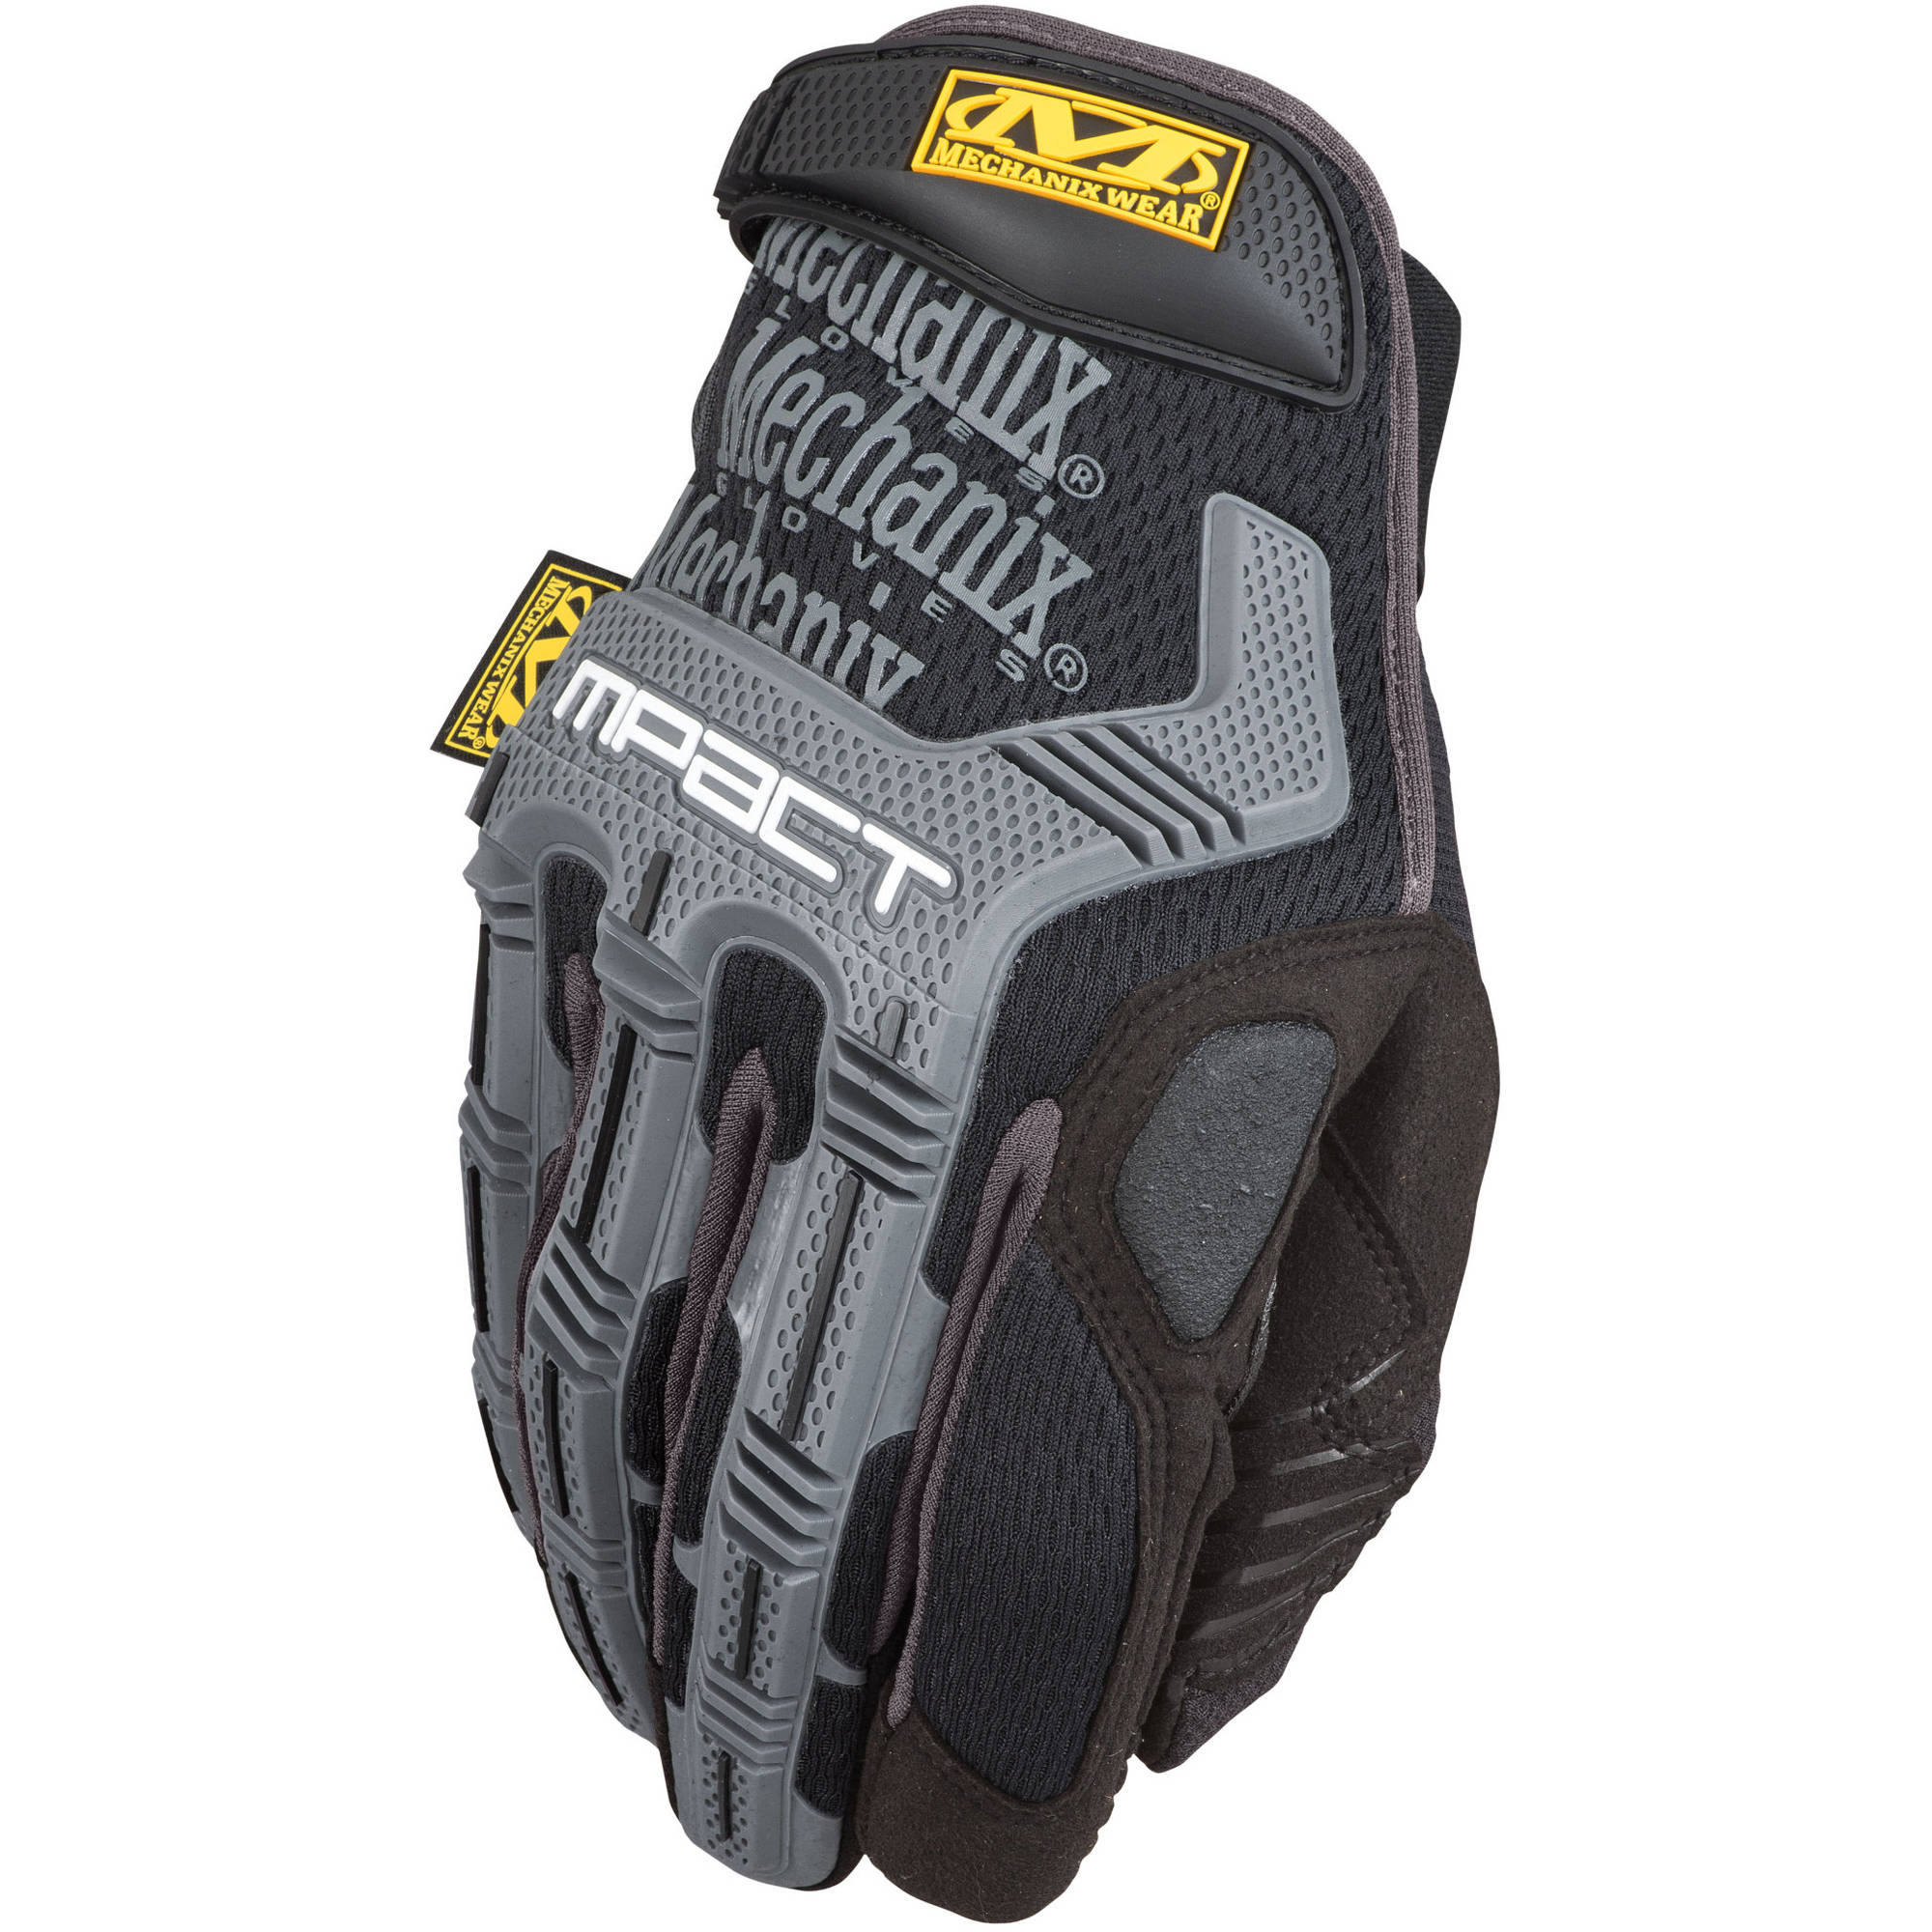 Mechanix wear m pact glove black